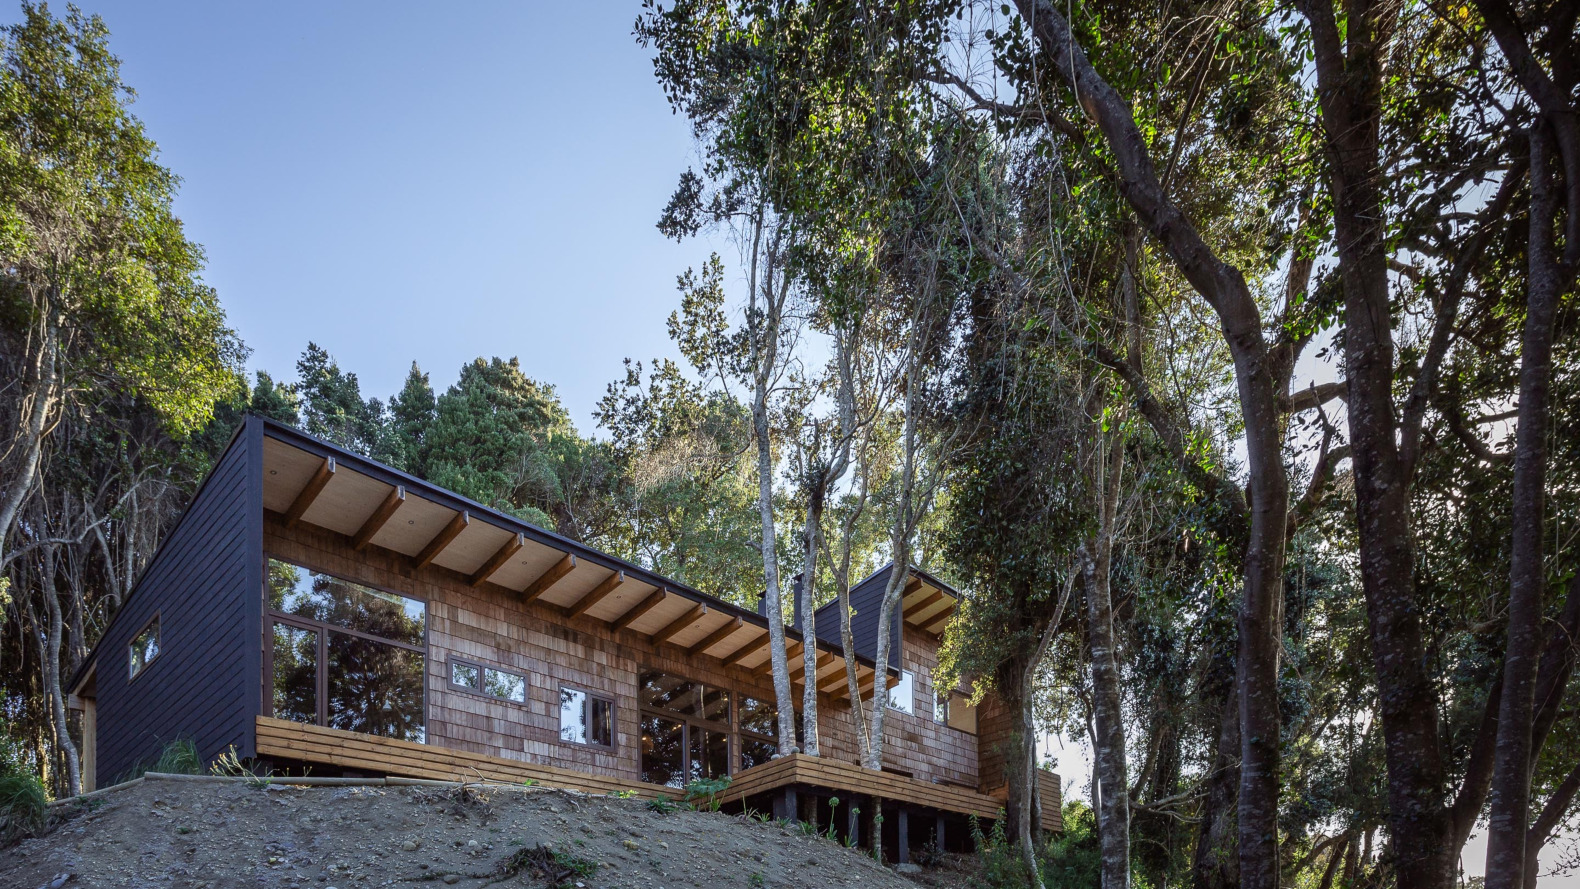 Lake house in Chile built with reclaimed wood melts into the forest